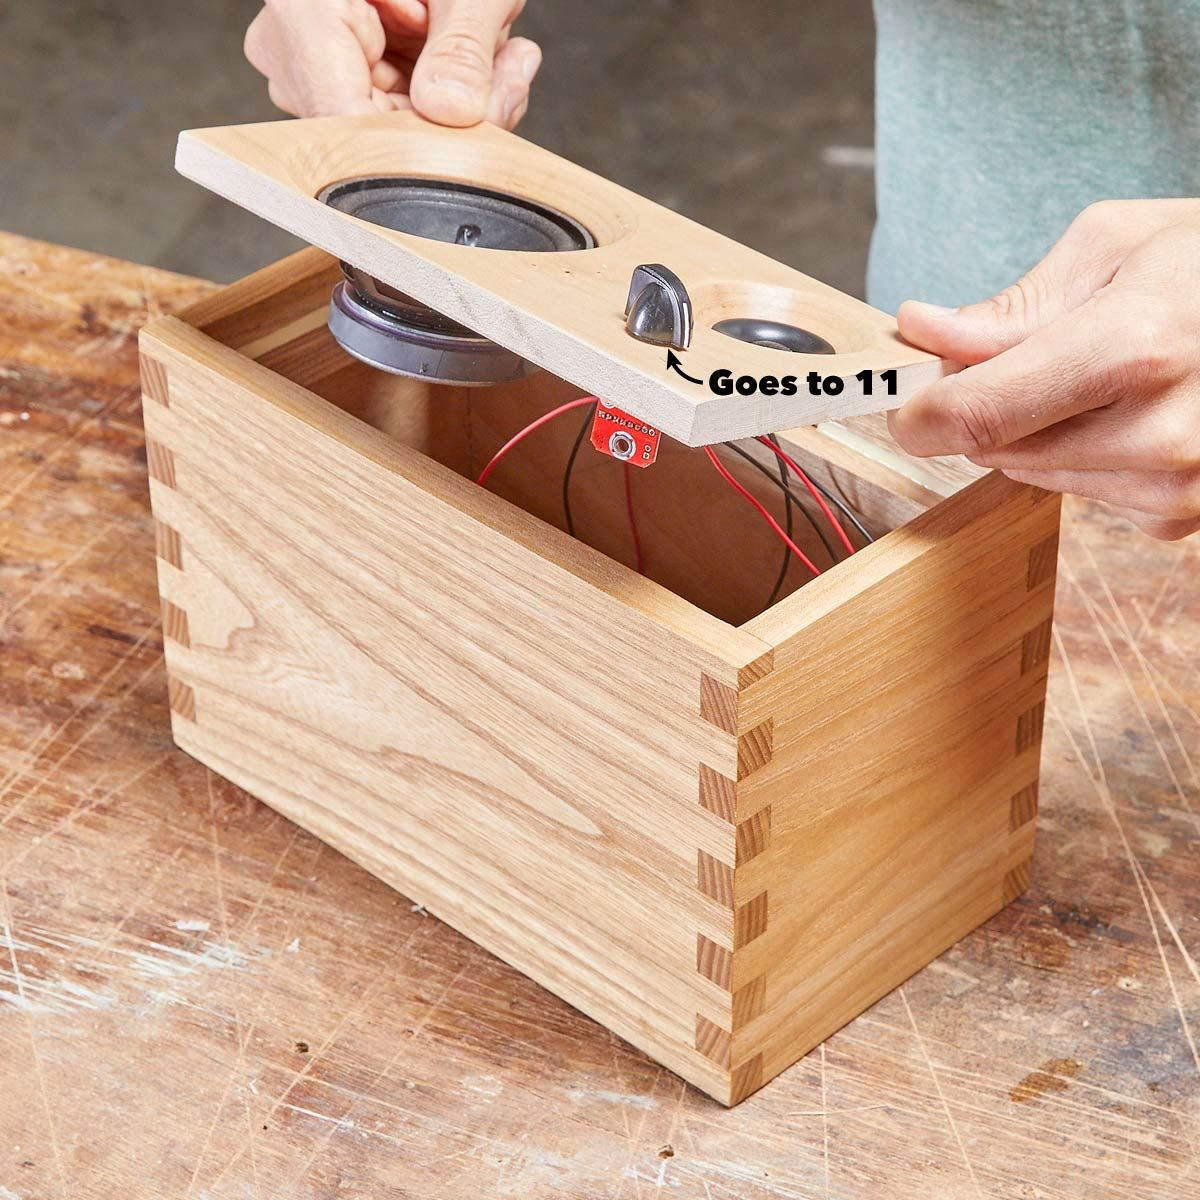 How to Make a Bluetooth Speaker with Box Joints Diy